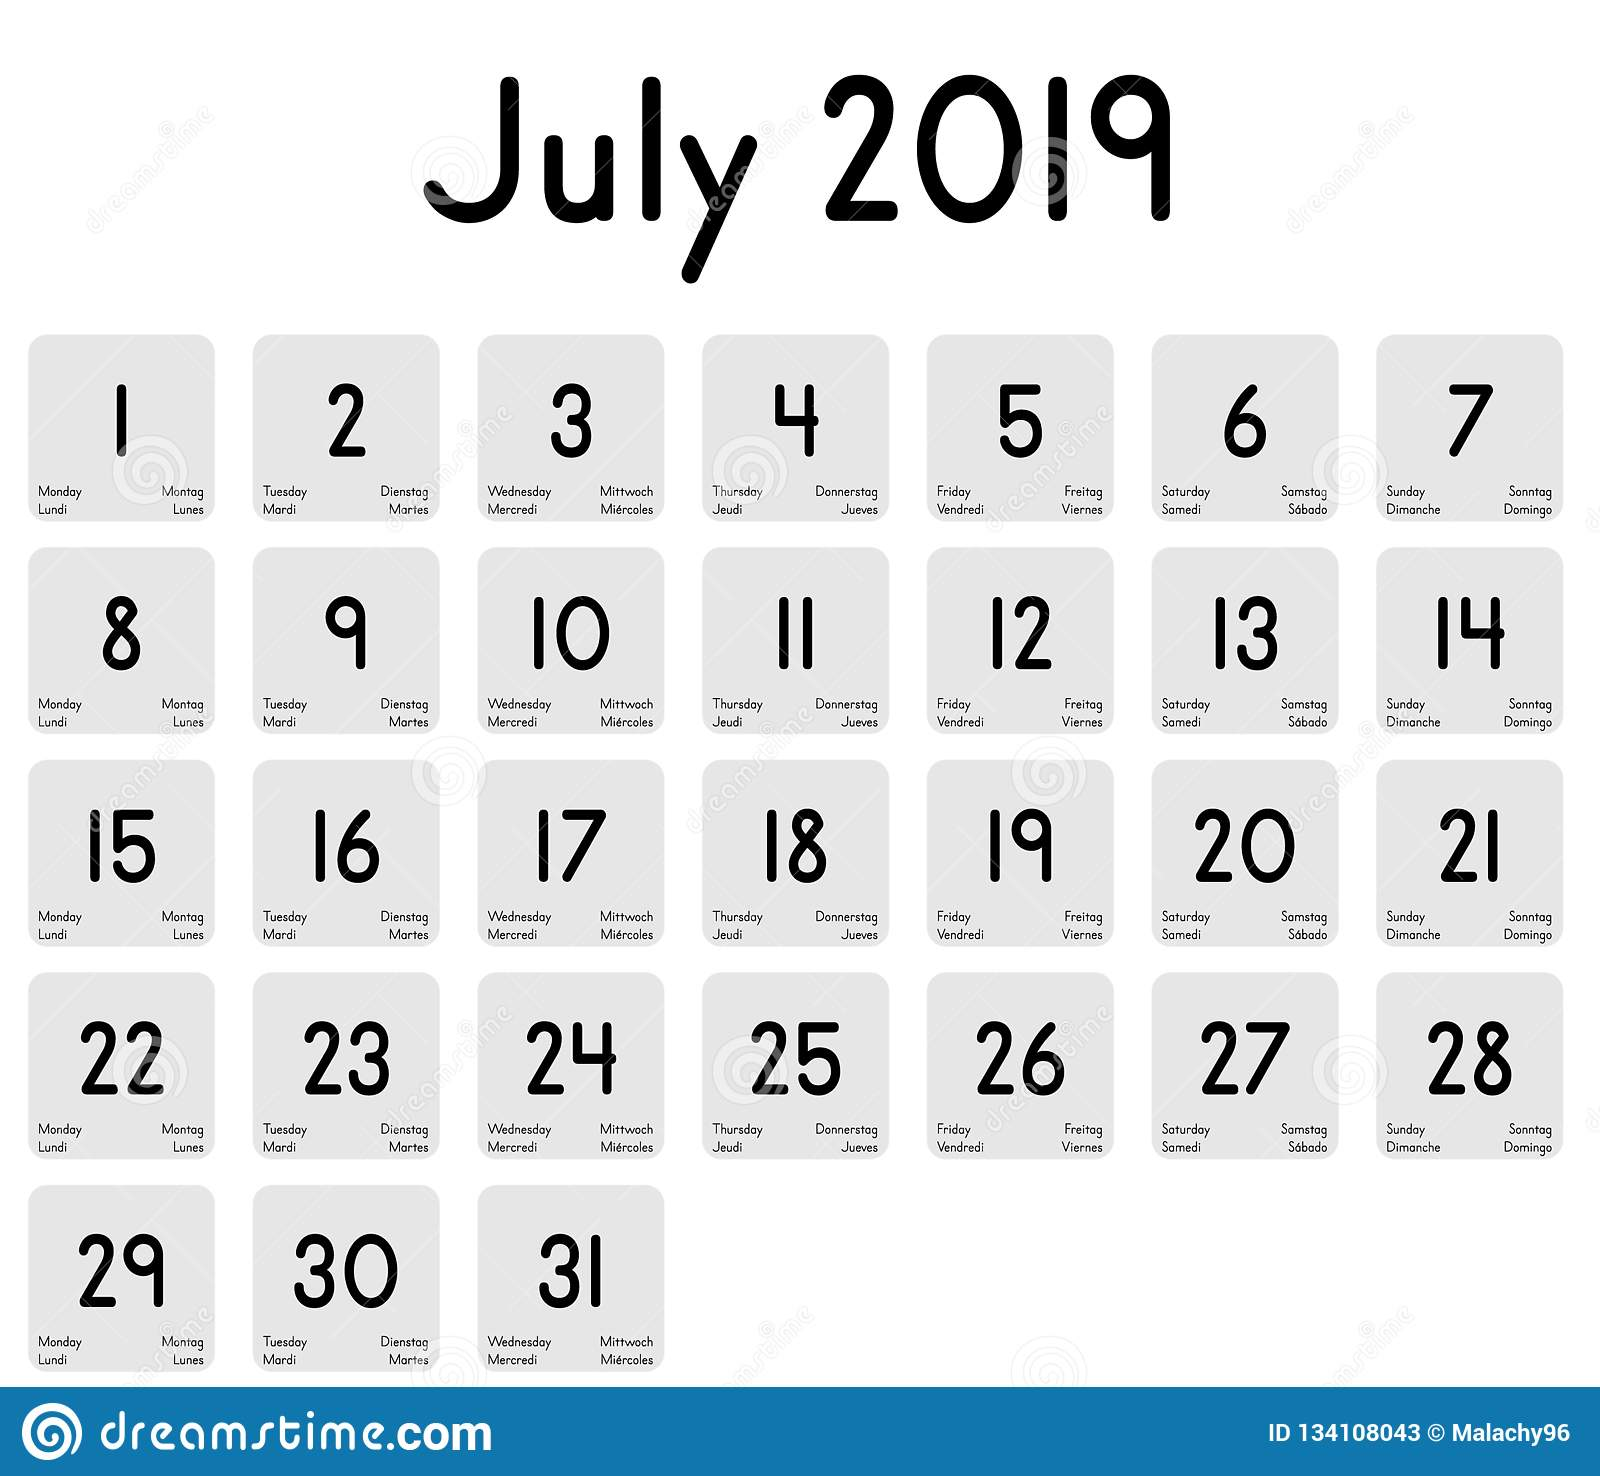 Calendario Julio 2019 Vector.Calendar Of The Month Of July 2019 Stock Vector